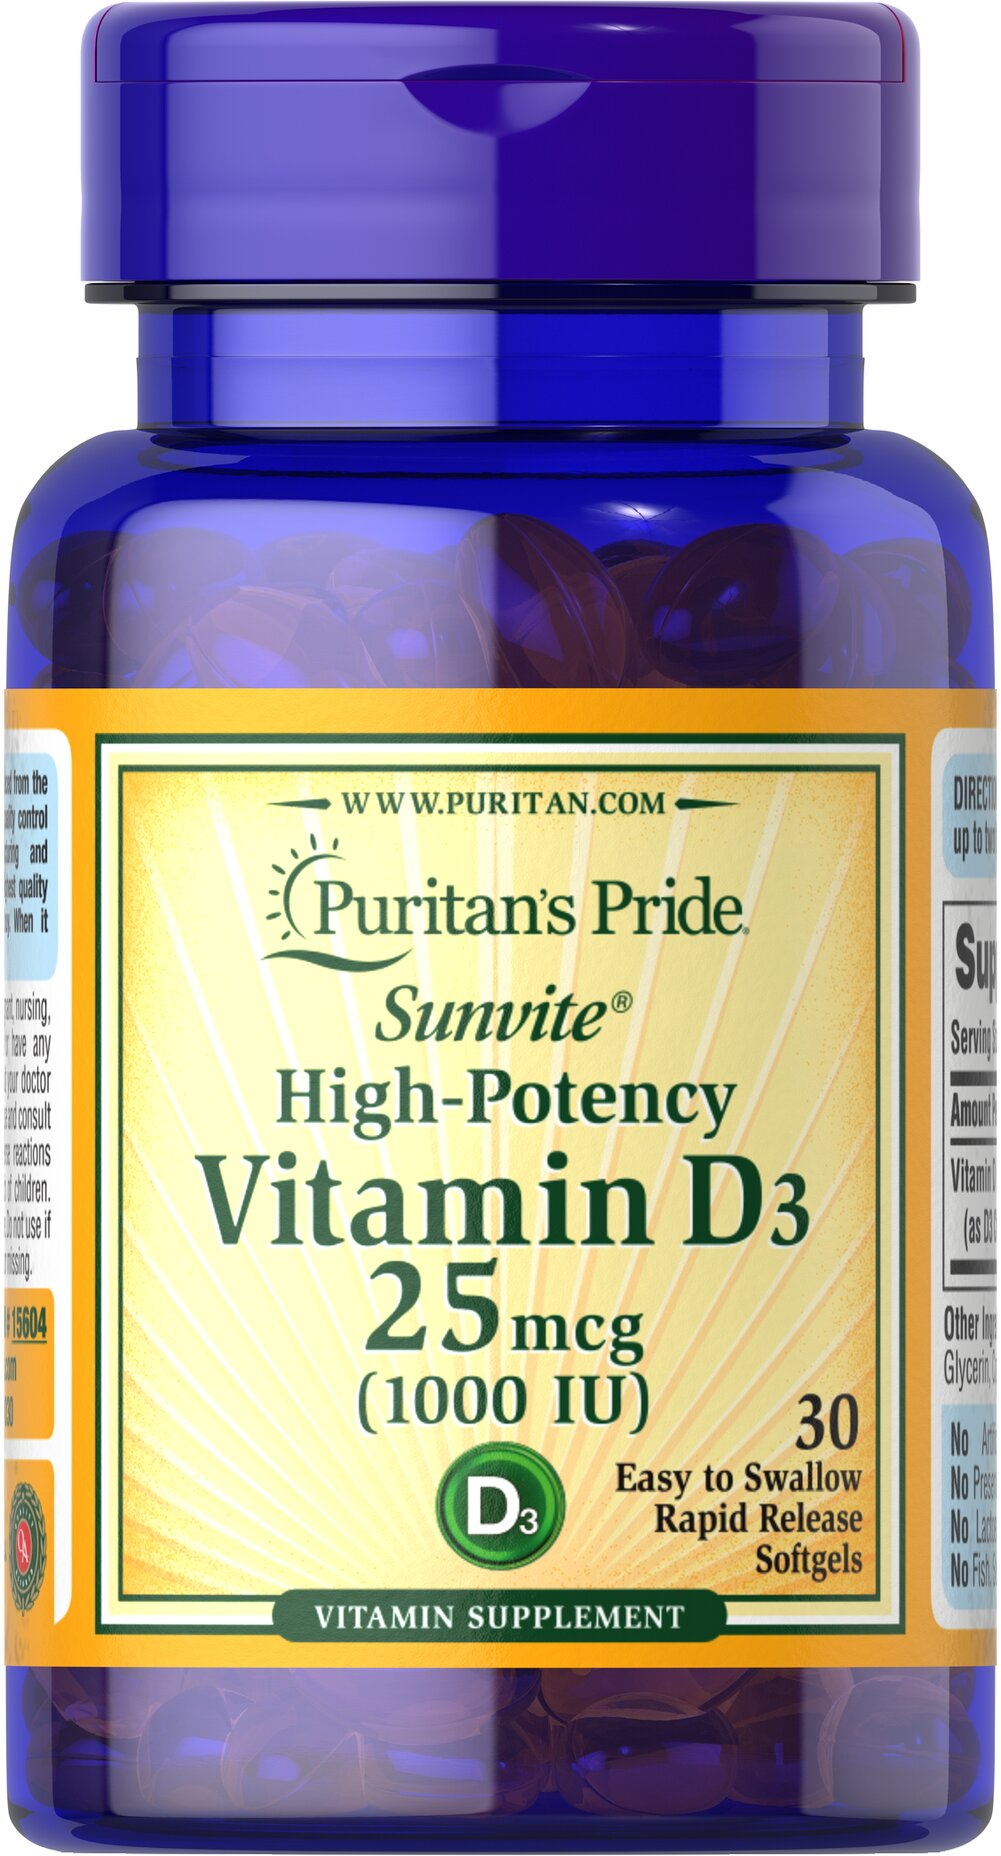 Vitamin D3 25 mcg (1000 IU) Trial Size Thumbnail Alternate Bottle View